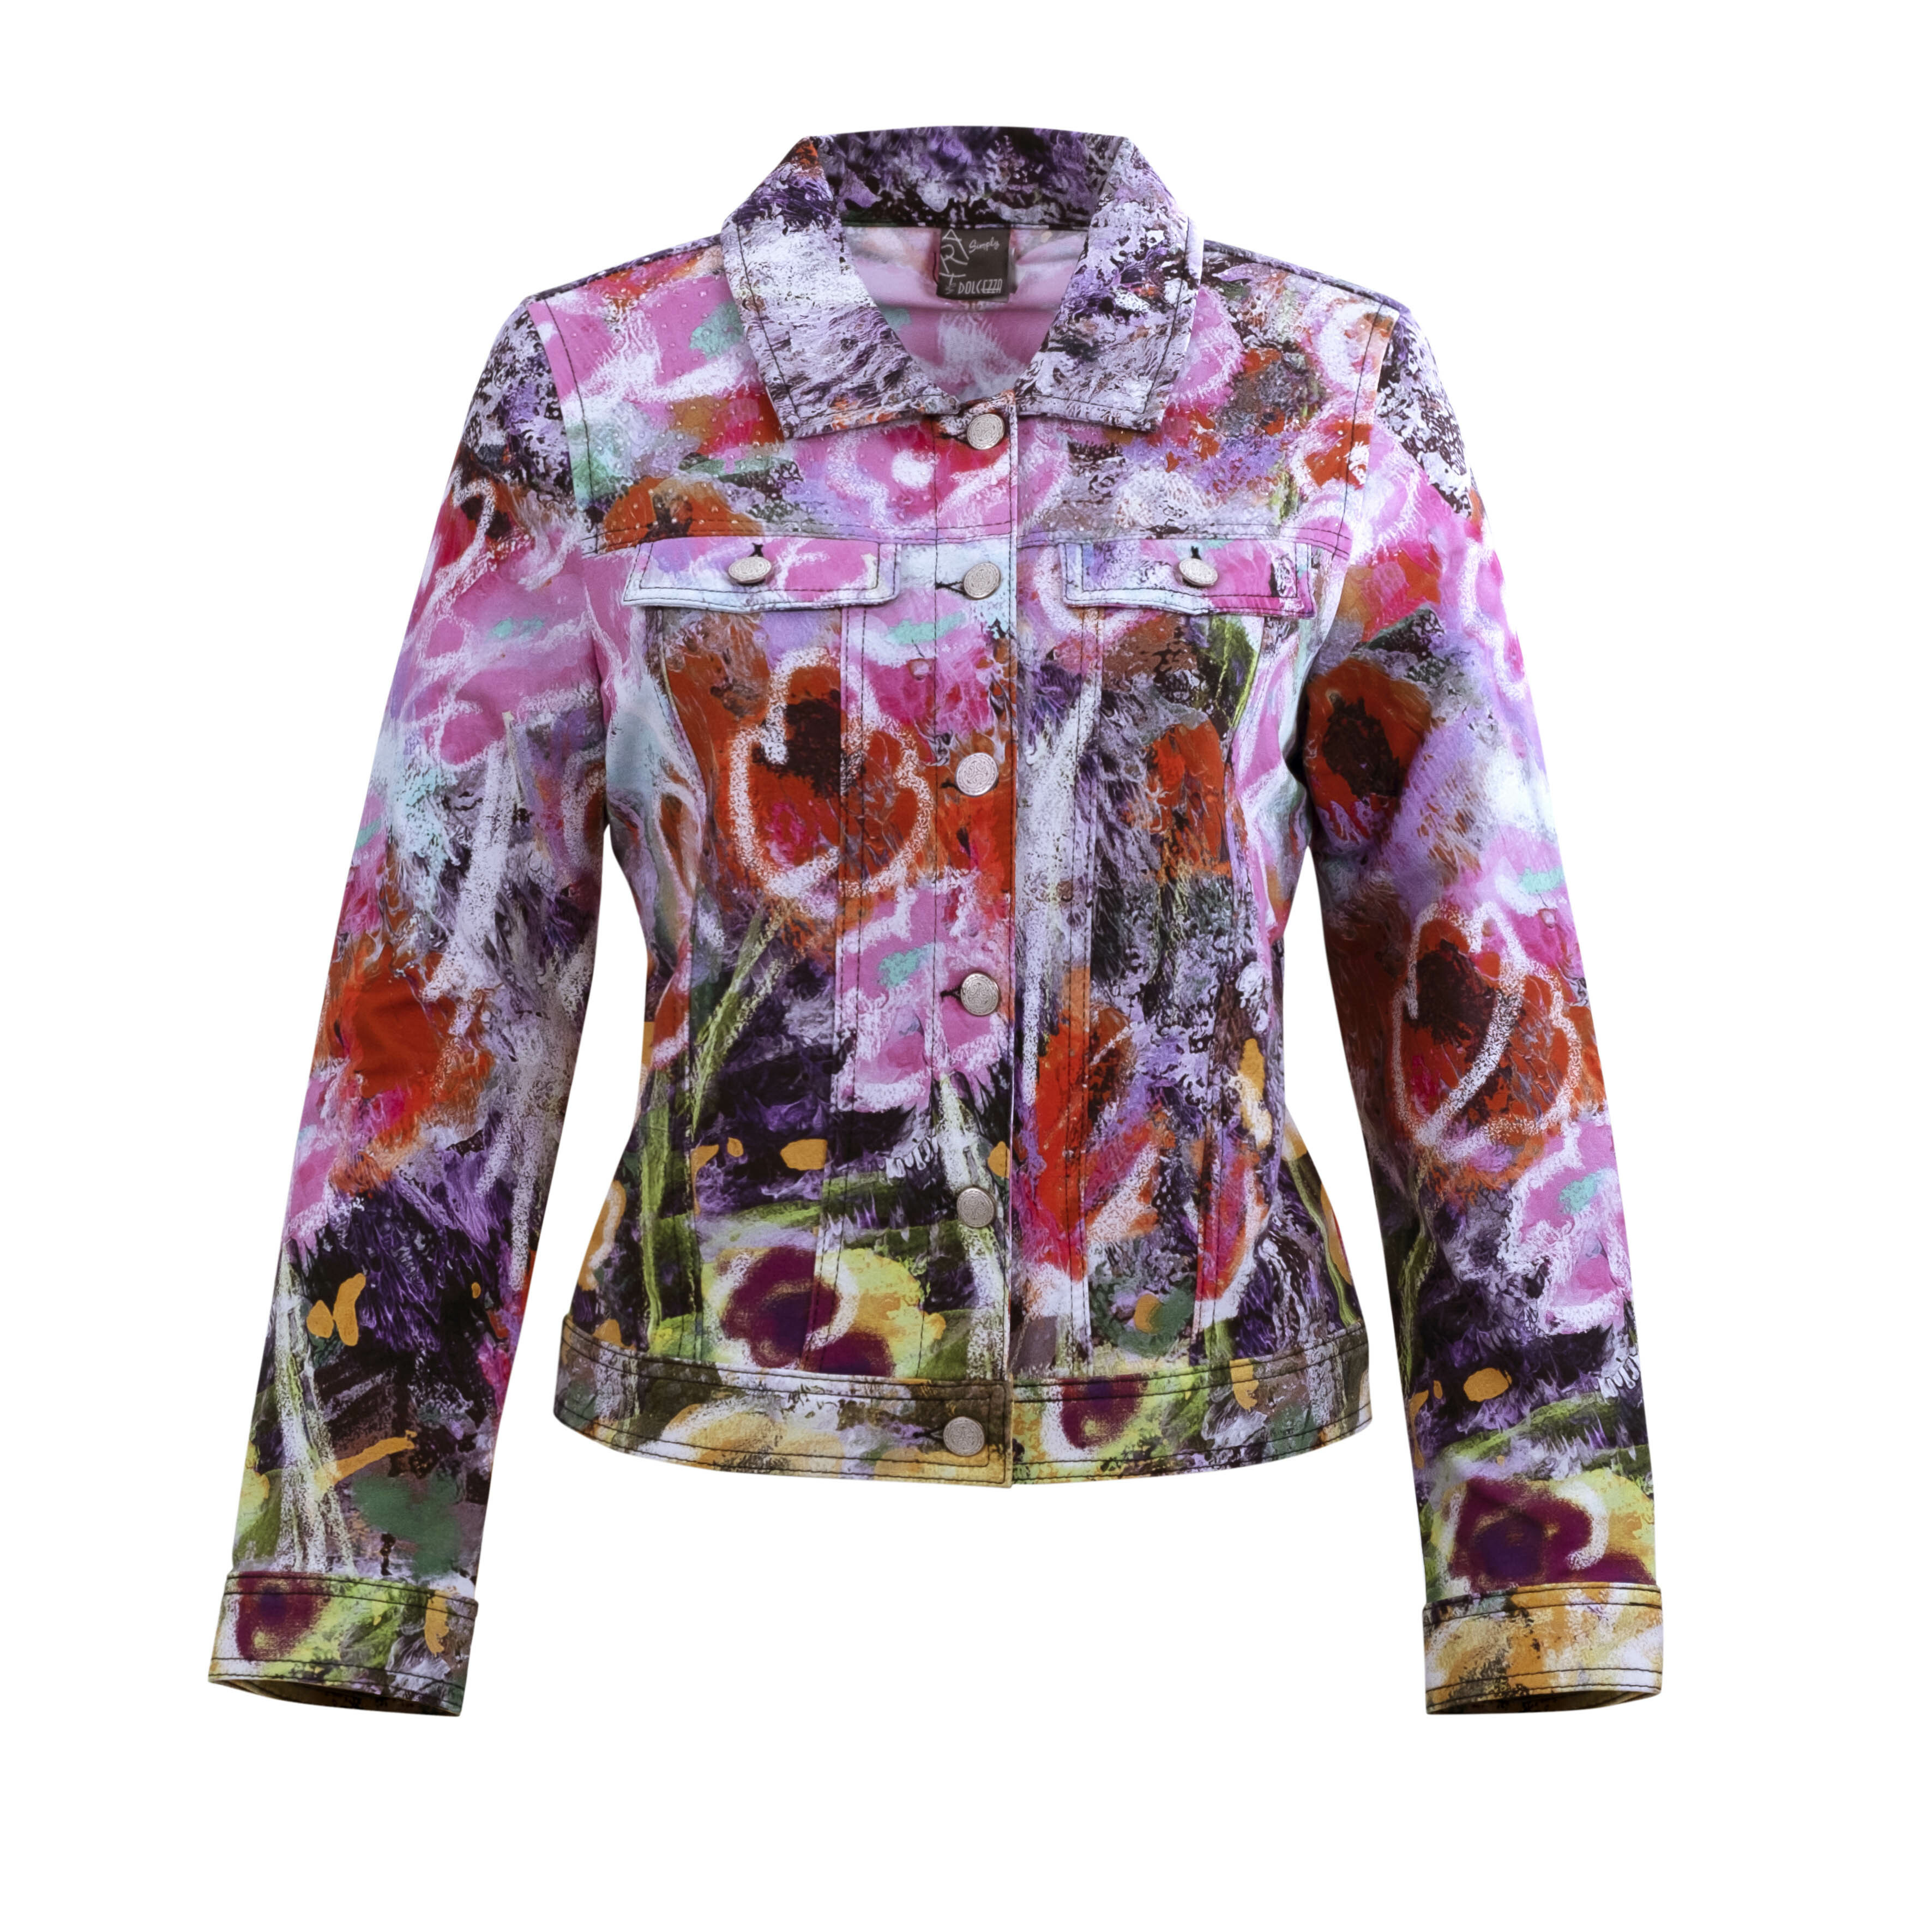 Simply Art Dolcezza: Wildest Flowers Abstract Art Denim Jacket DOLCEZZA_SIMPLYART_20610_N